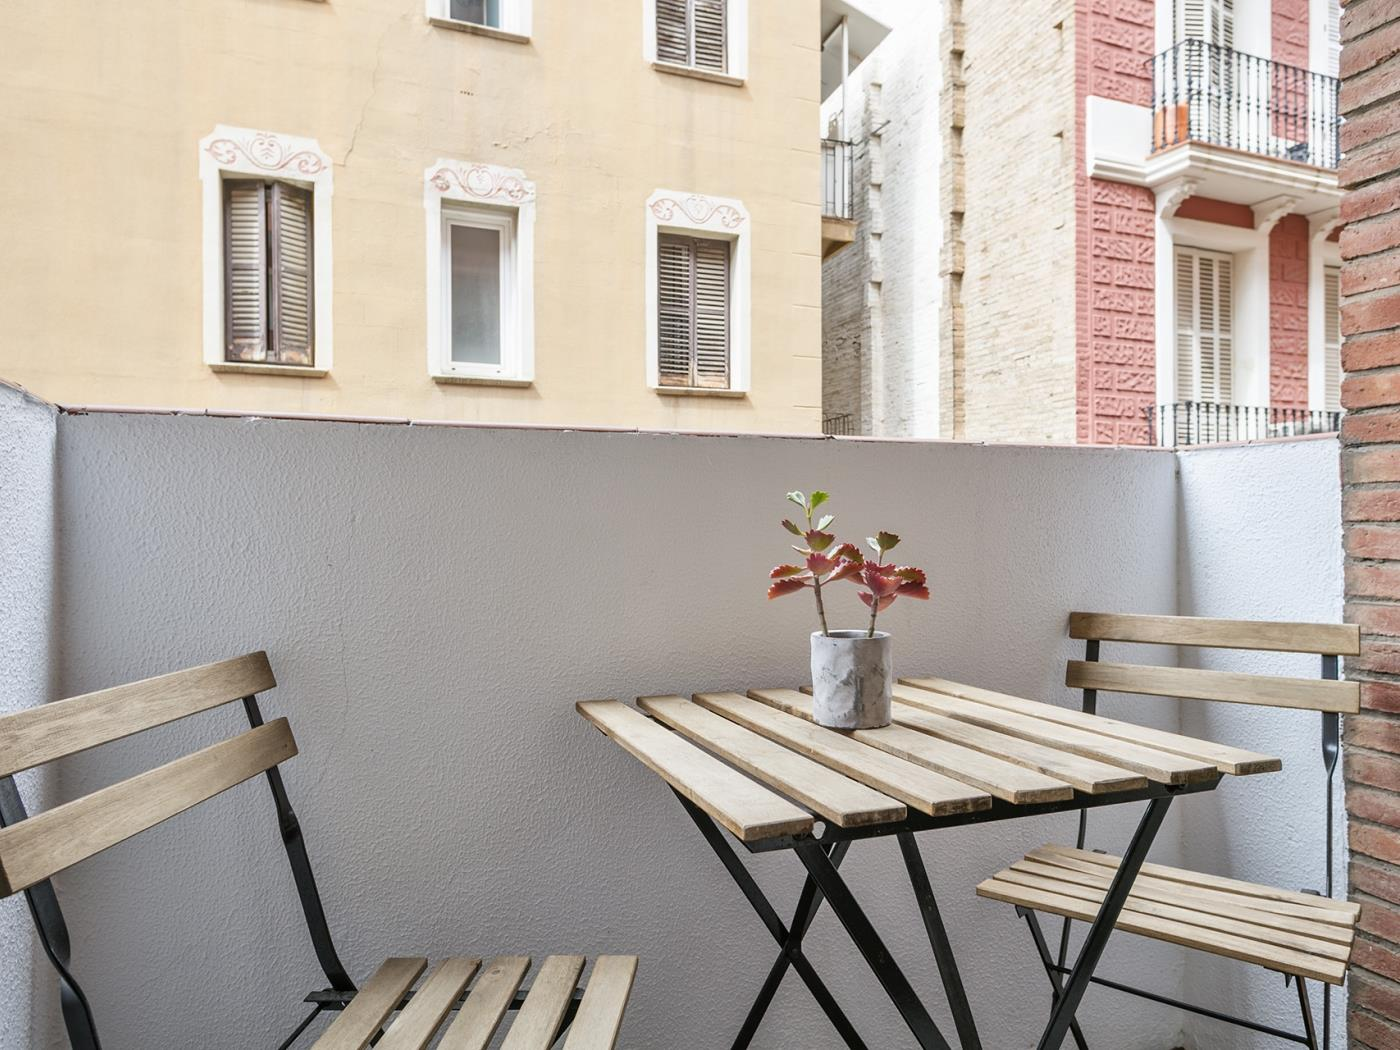 Elegant apartment with private terrace for montly rentals with optional parking - My Space Barcelona Apartments